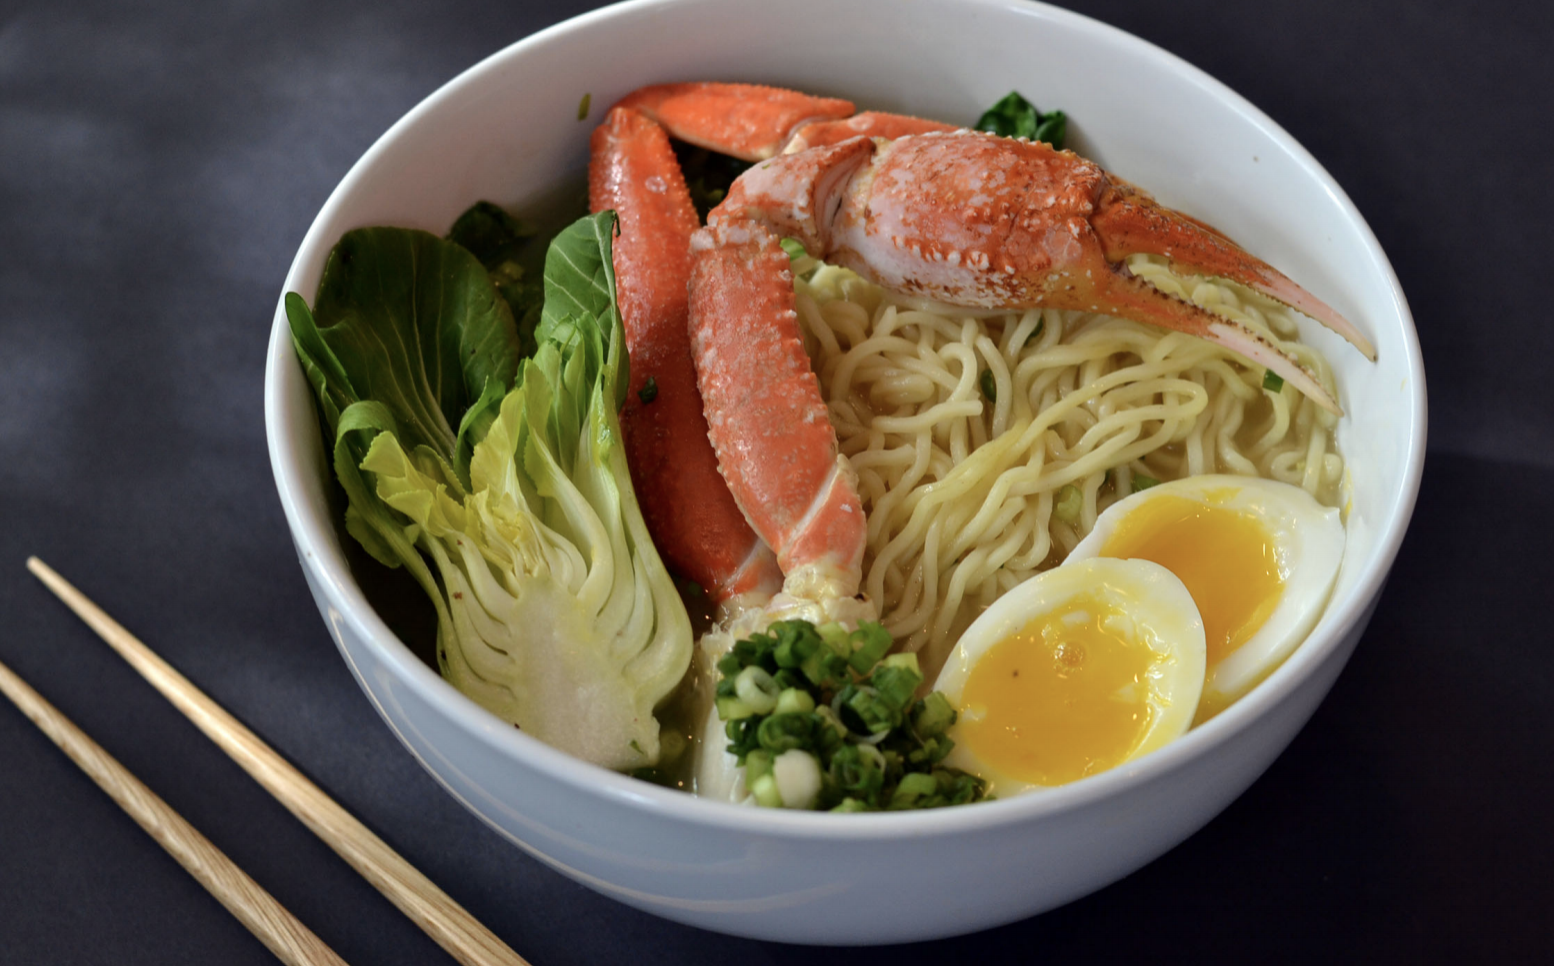 A view of a bowl of ramen with crab legs, hard boiled eggs, and cabbage, and chopsticks on the side